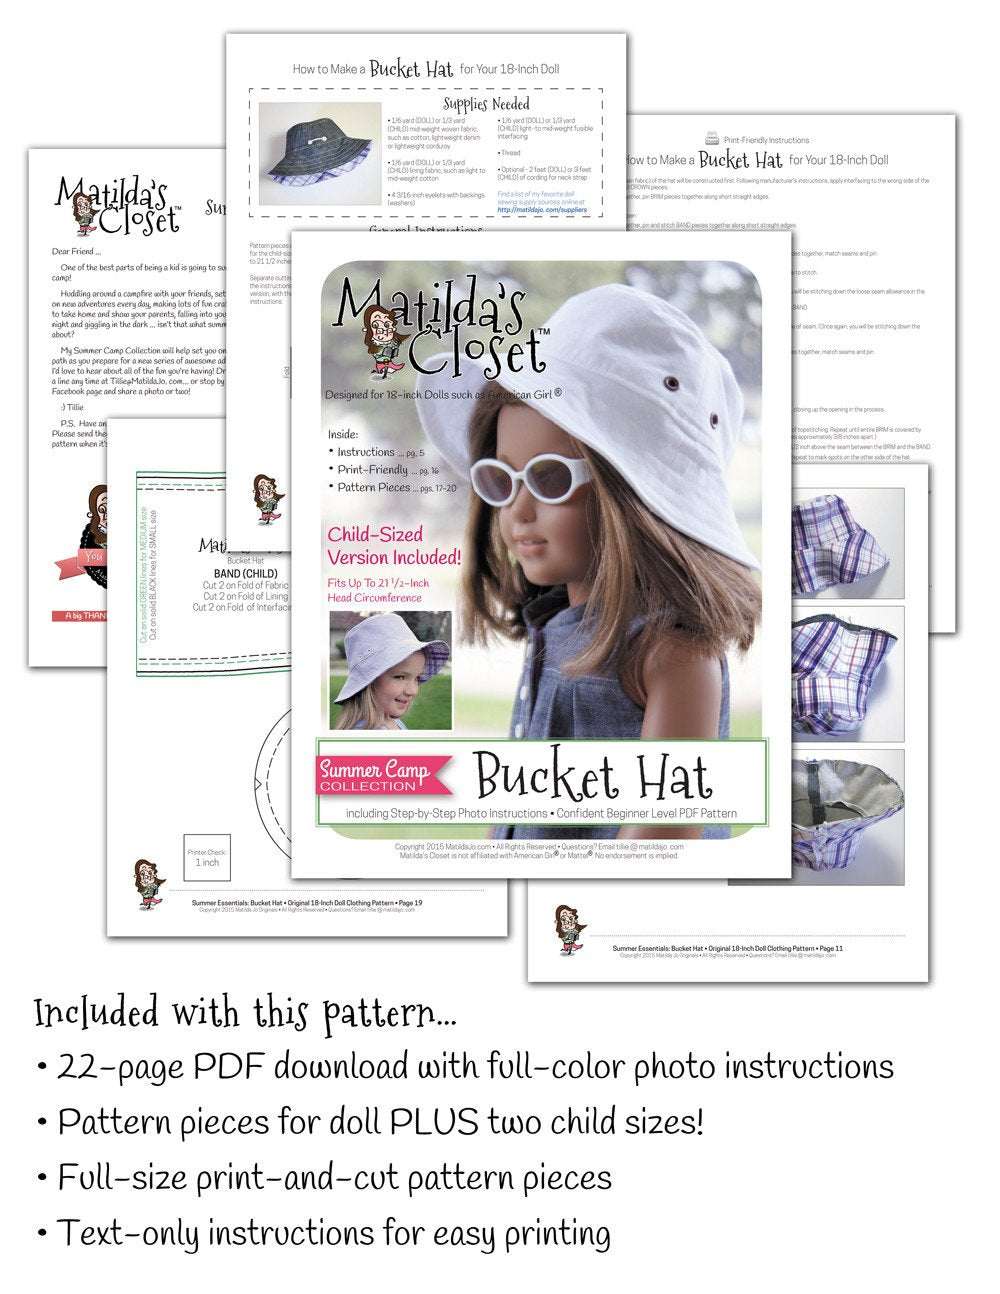 e4c96ed52effe Matilda s Closet Summer Camp Collection  Bucket Hat for Girls and ...